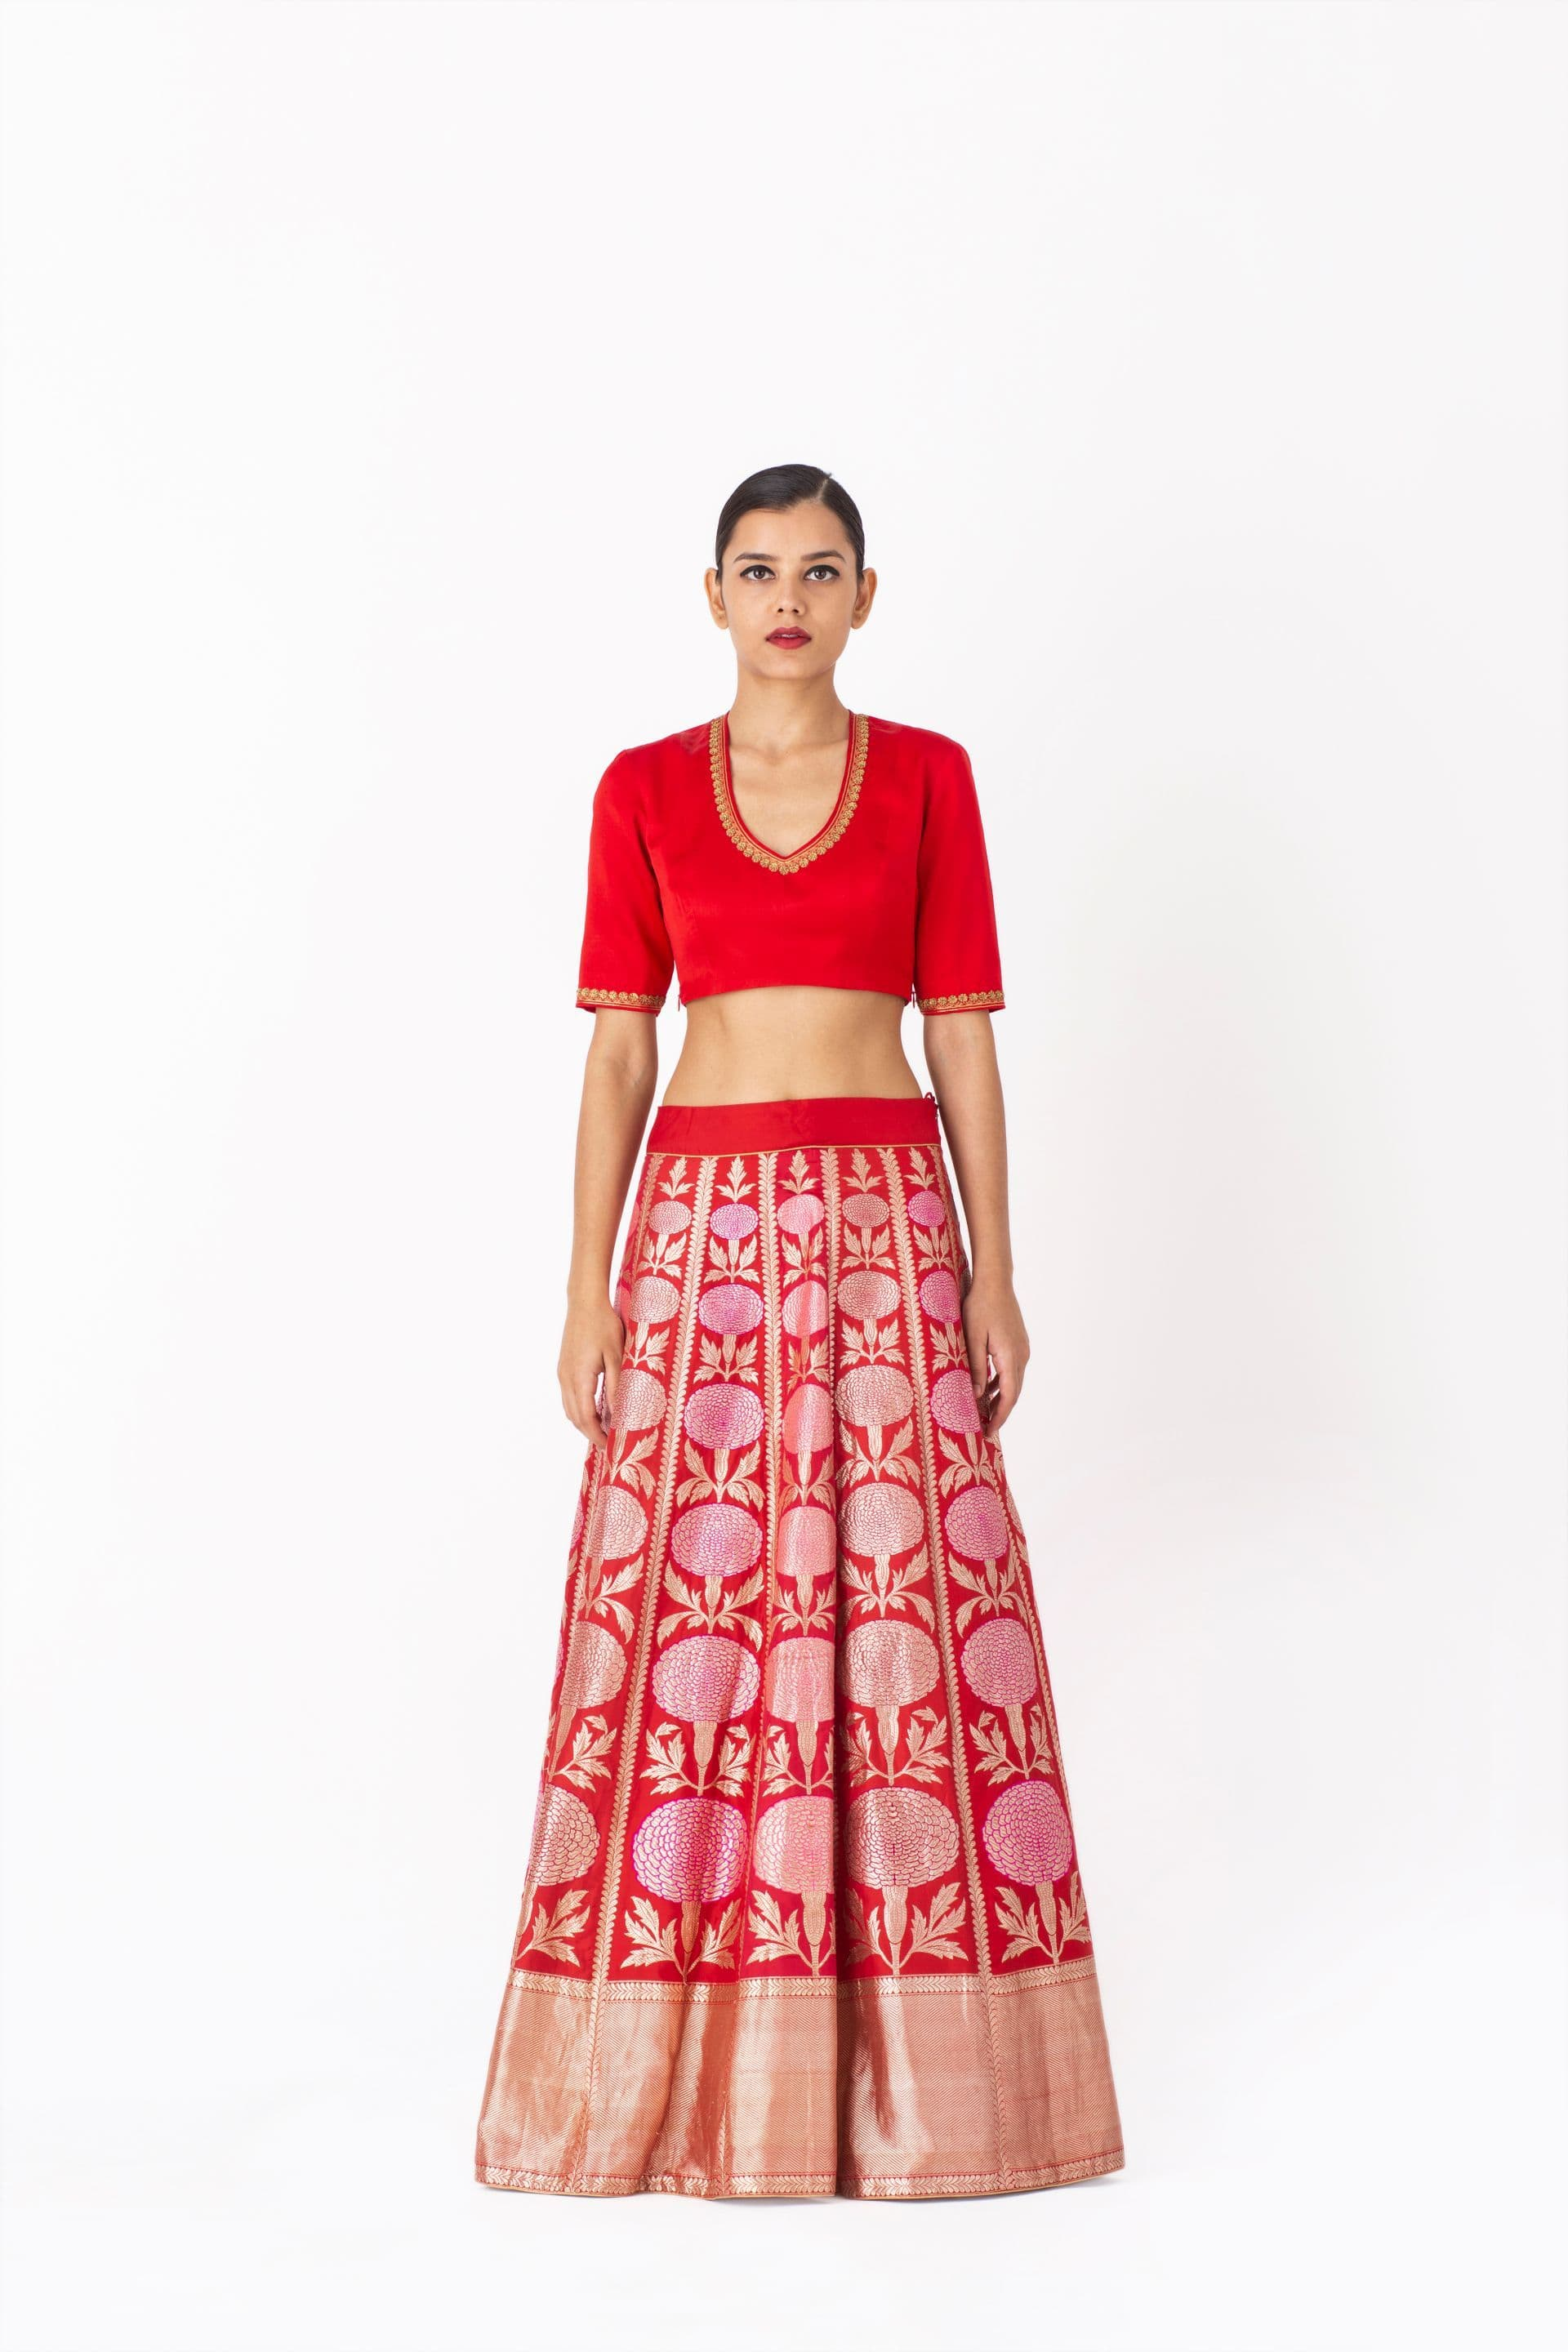 Raw Mango Light Lehengas Reyhana & Hakim silk brocade lehenga set